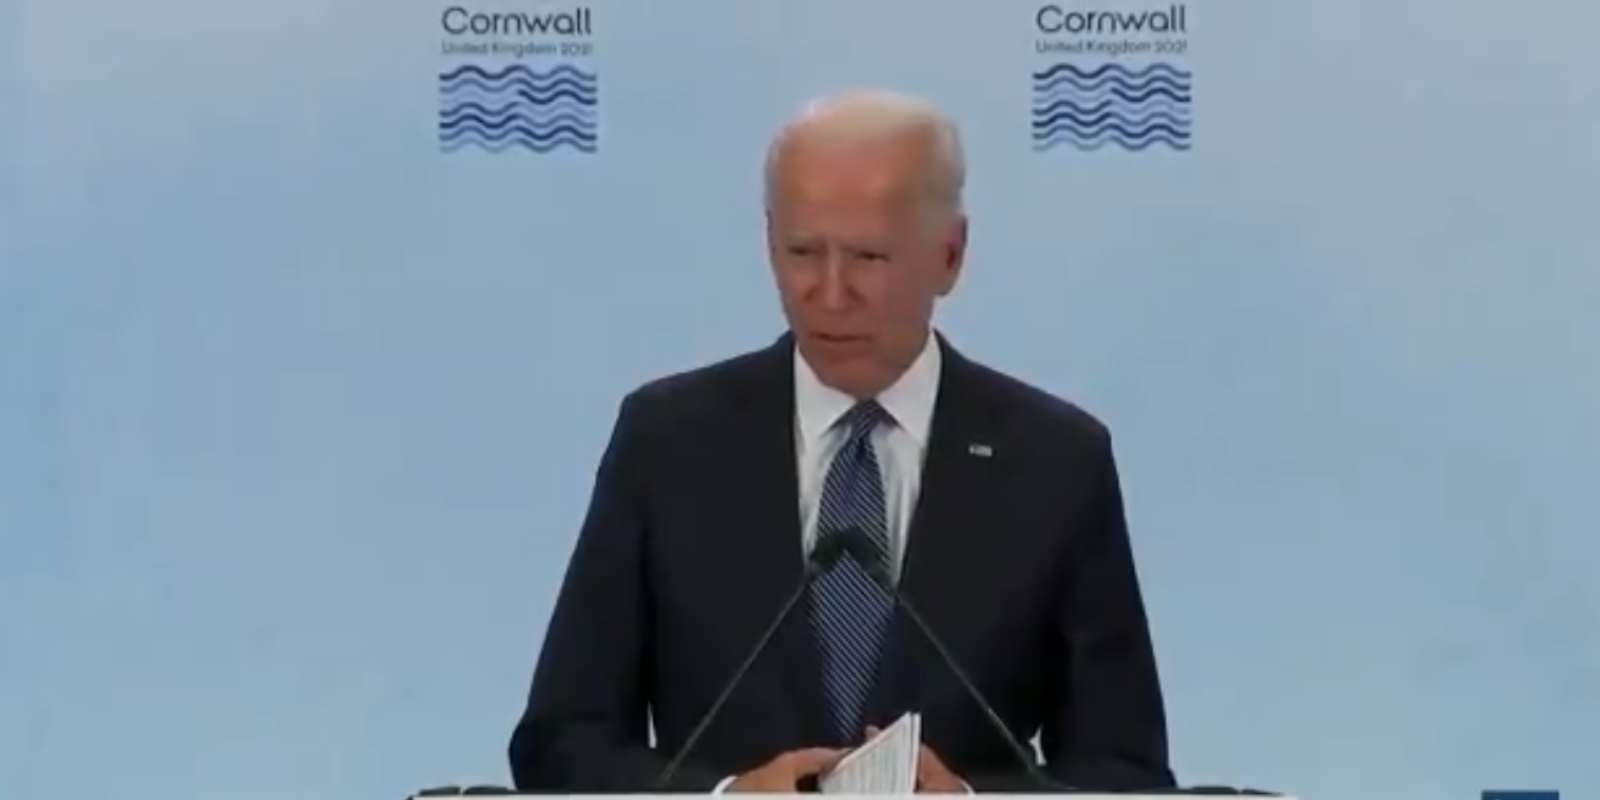 BREAKING: Biden takes no questions from unauthorized reporters in gaffe-filled G7 press conference